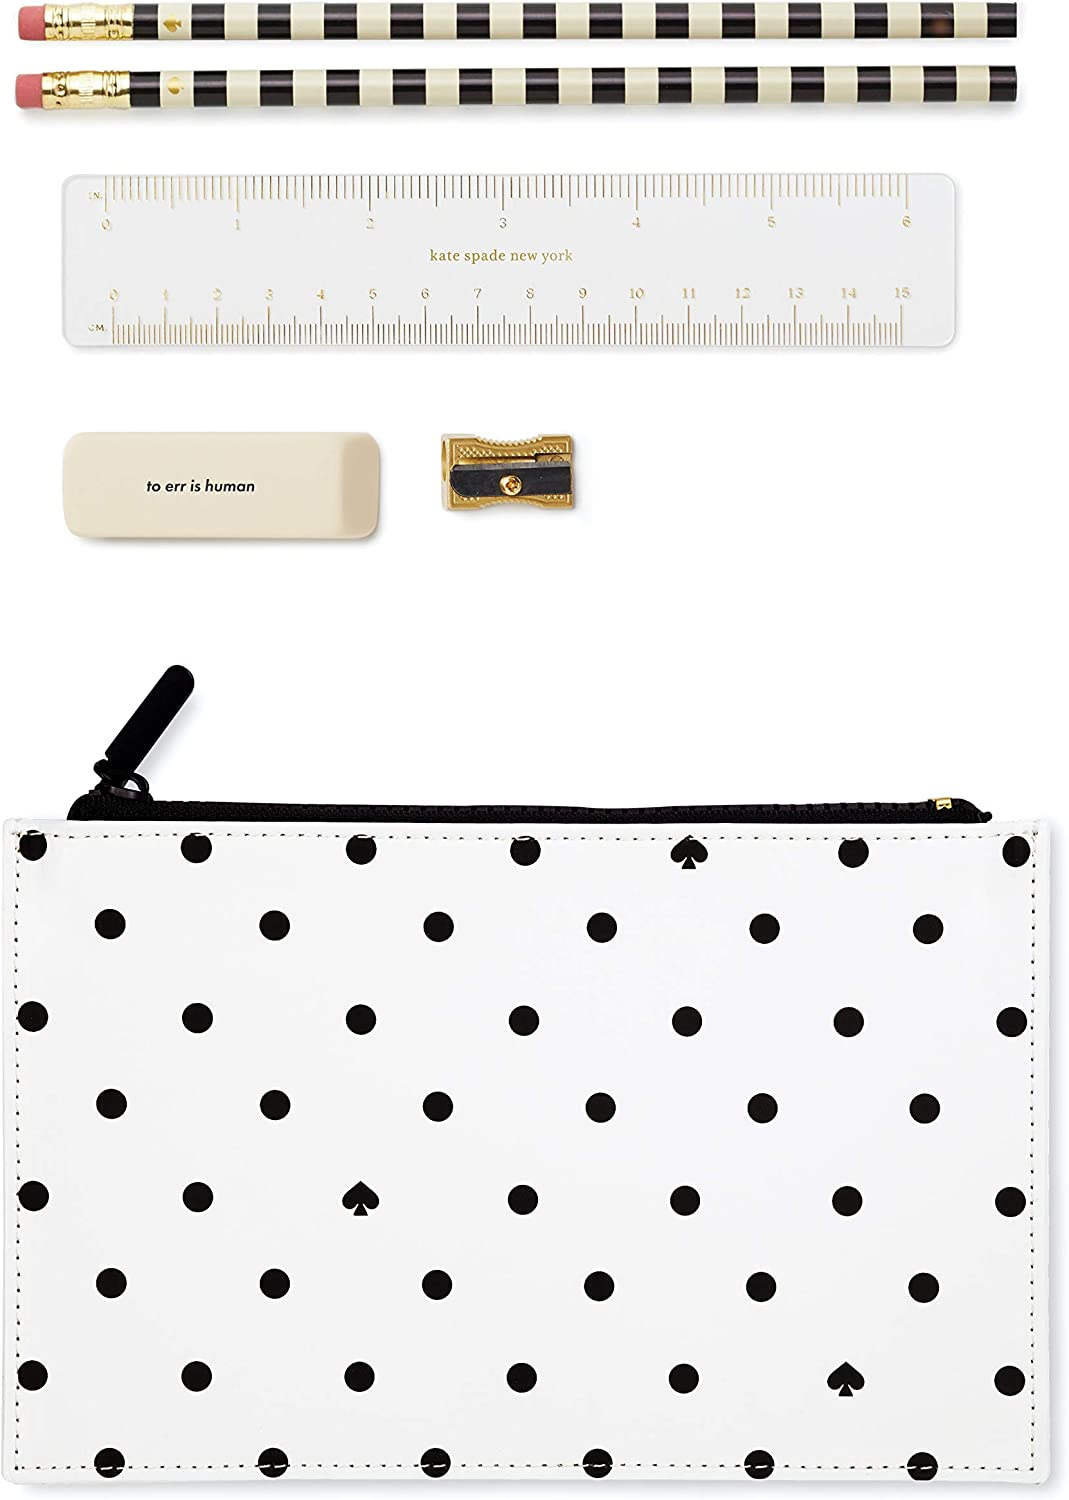 Kate Deluxe Spade New York Pencil Sharpener Including Pouch El Paso Mall Pencils 2